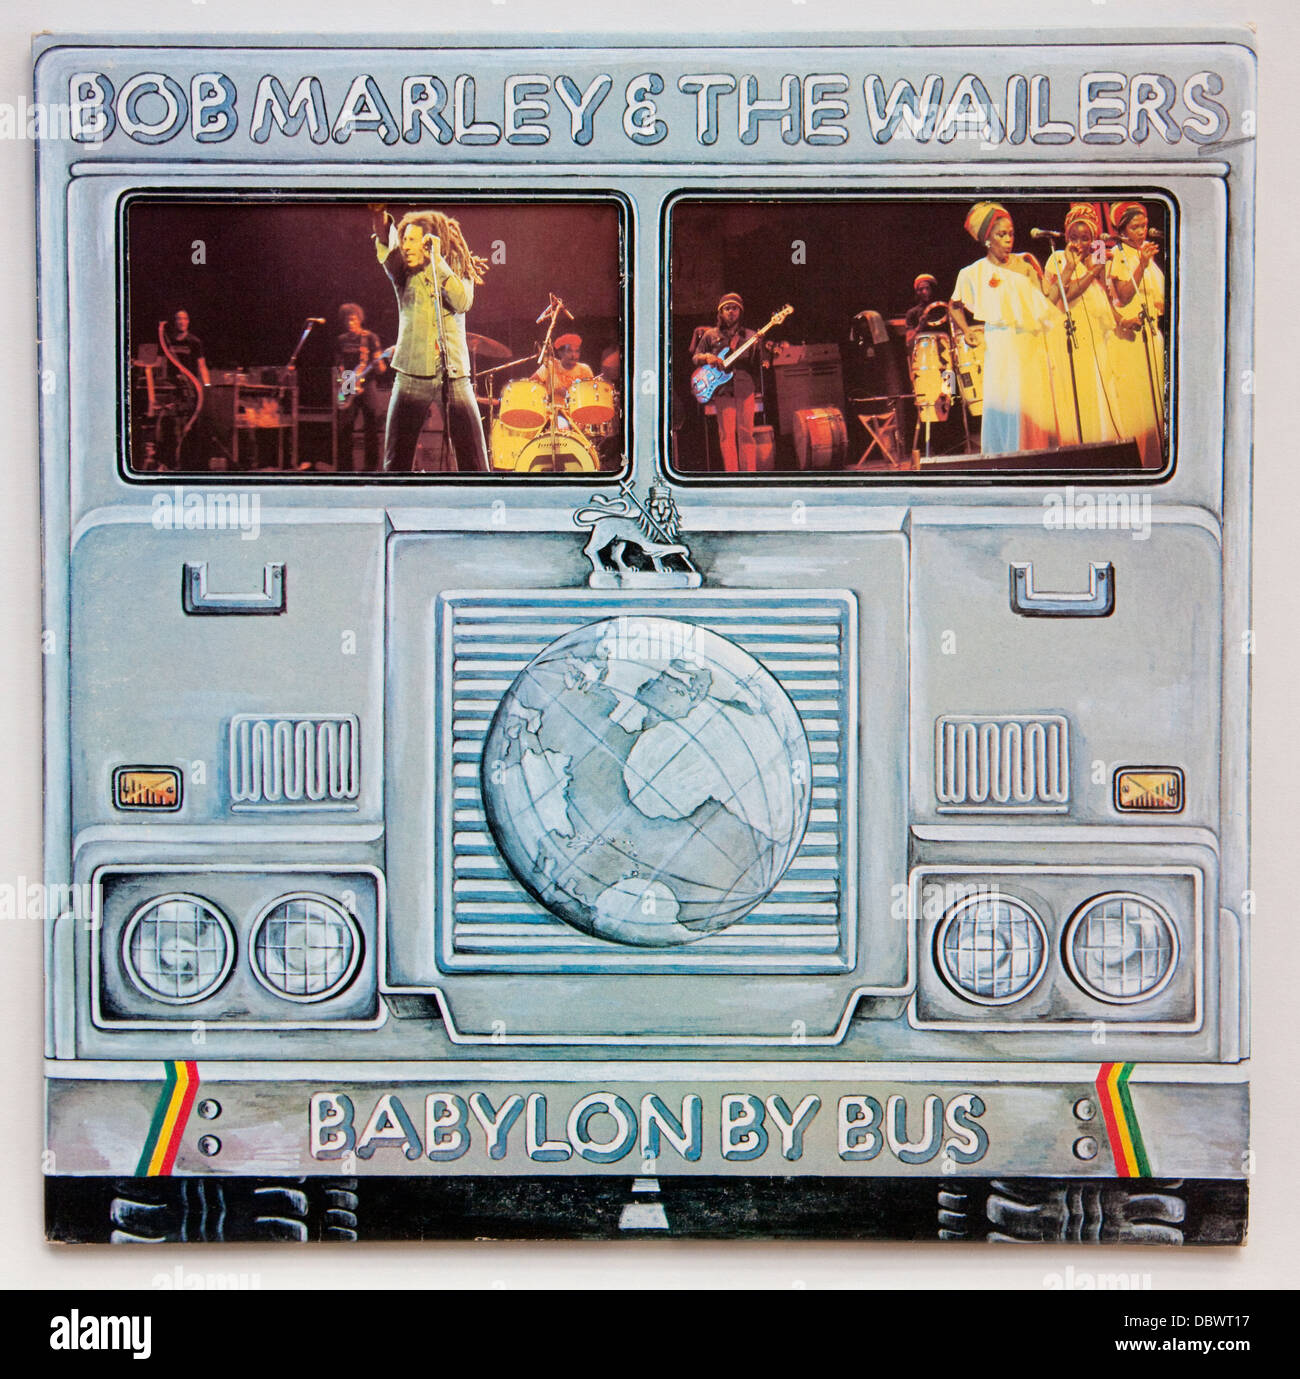 Bob Marley And The Wailers Babylon By Bus 1978 Live